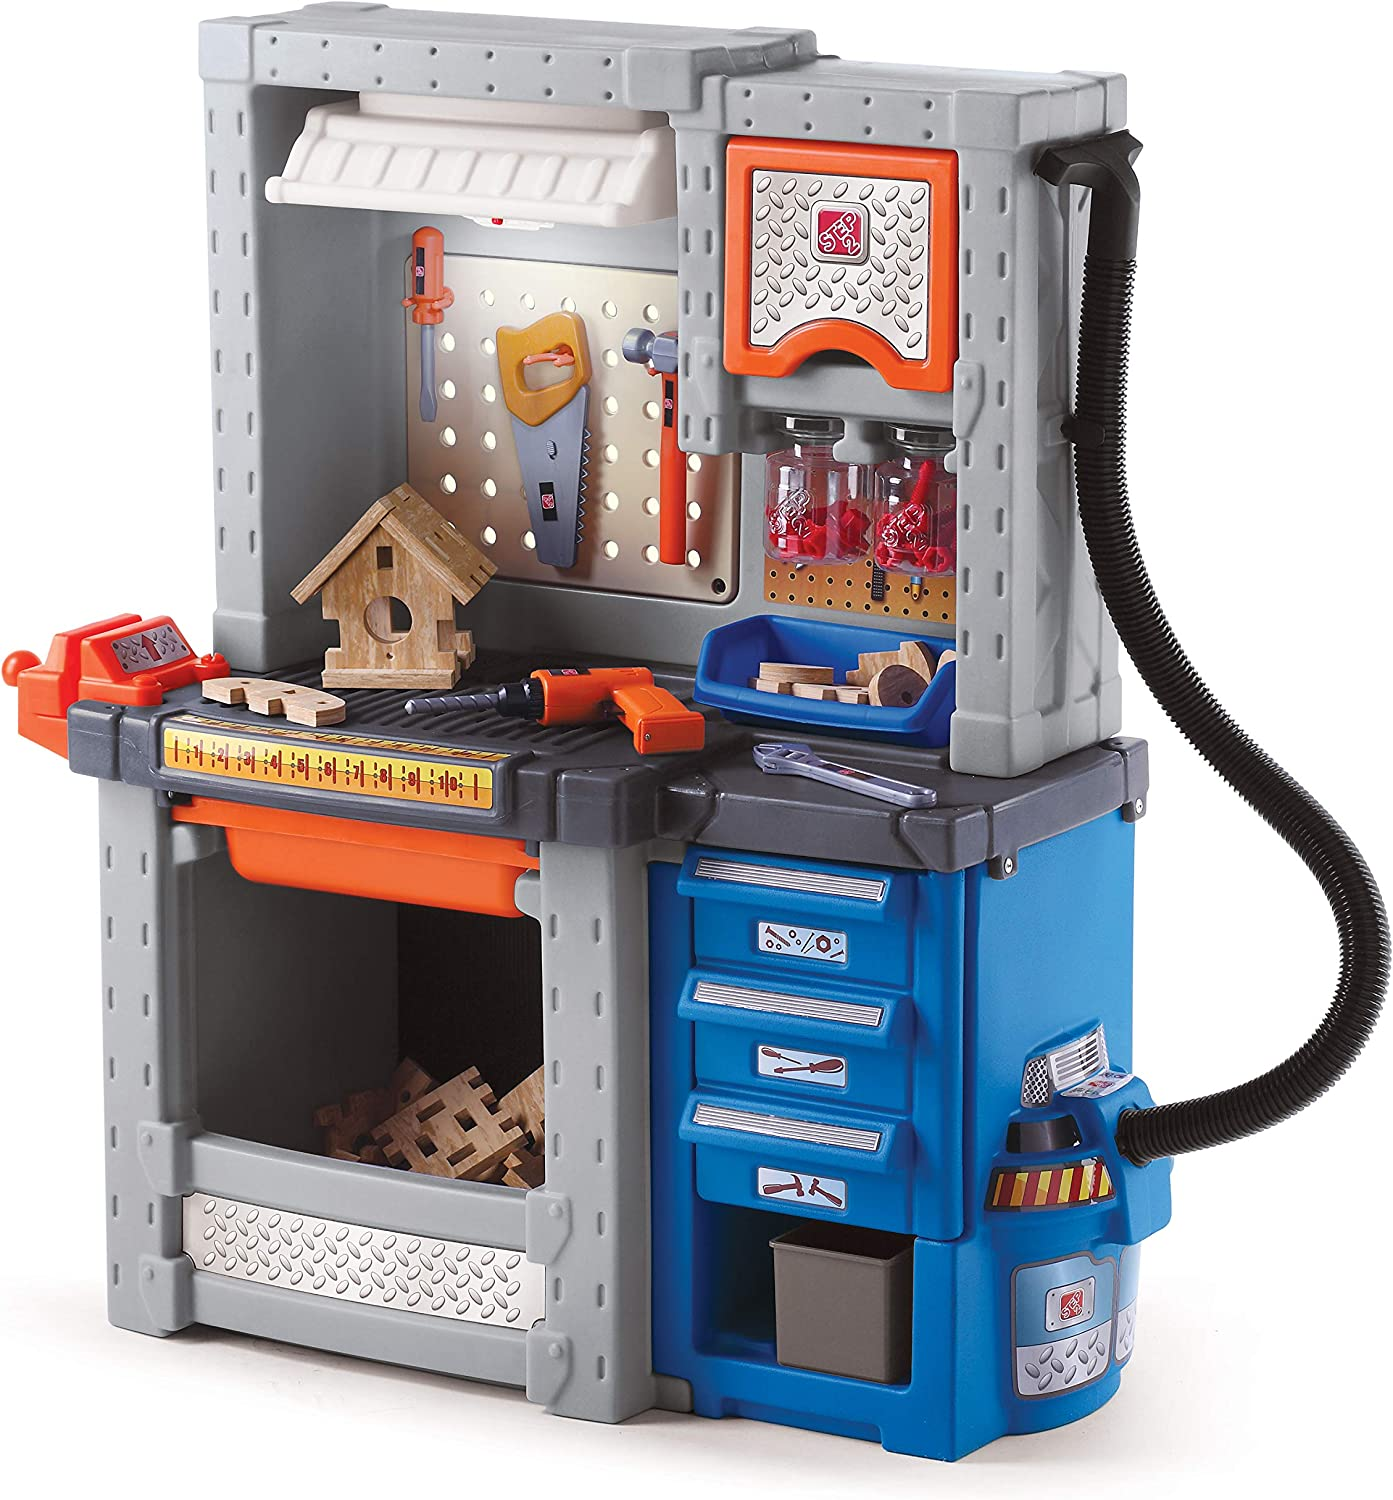 Step2 Deluxe Workshop Playset, Multi Color, 34 x 15 x 40.75 inches